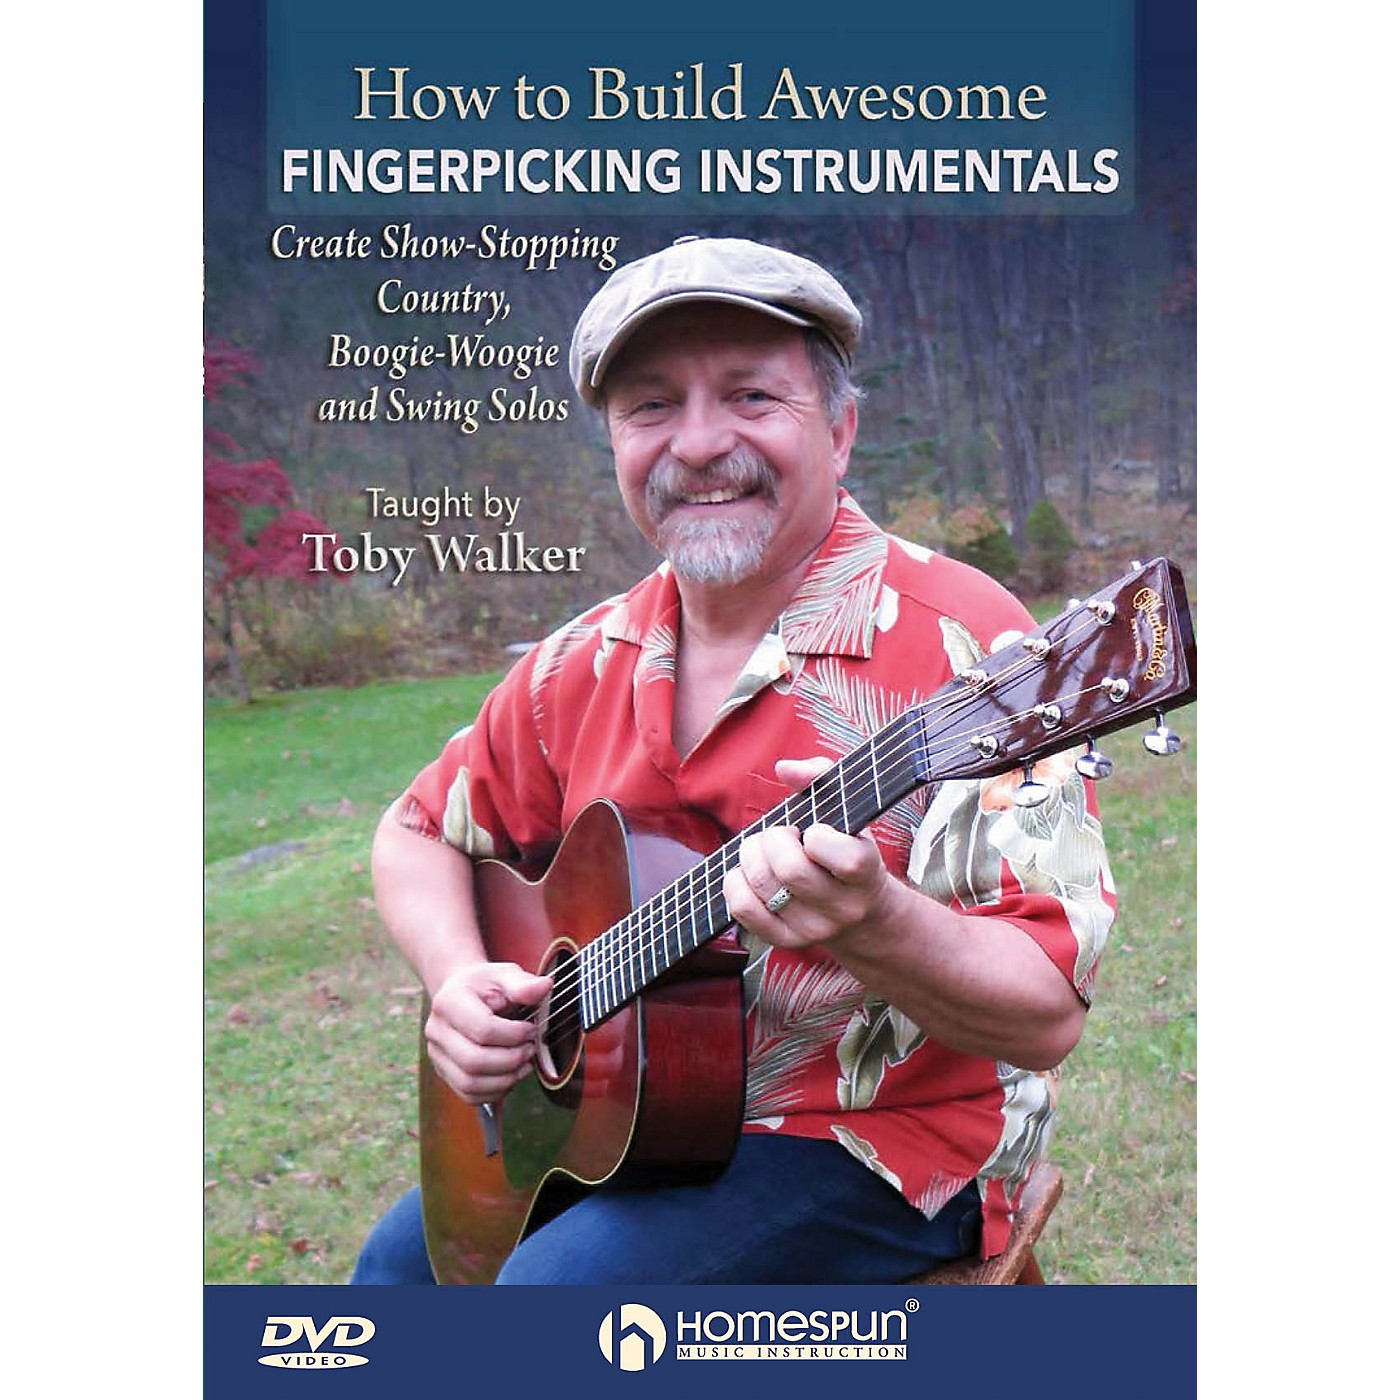 Homespun How to Build Awesome Fingerpicking Instrumentals Homespun Tapes Series DVD Written by Toby Walker thumbnail